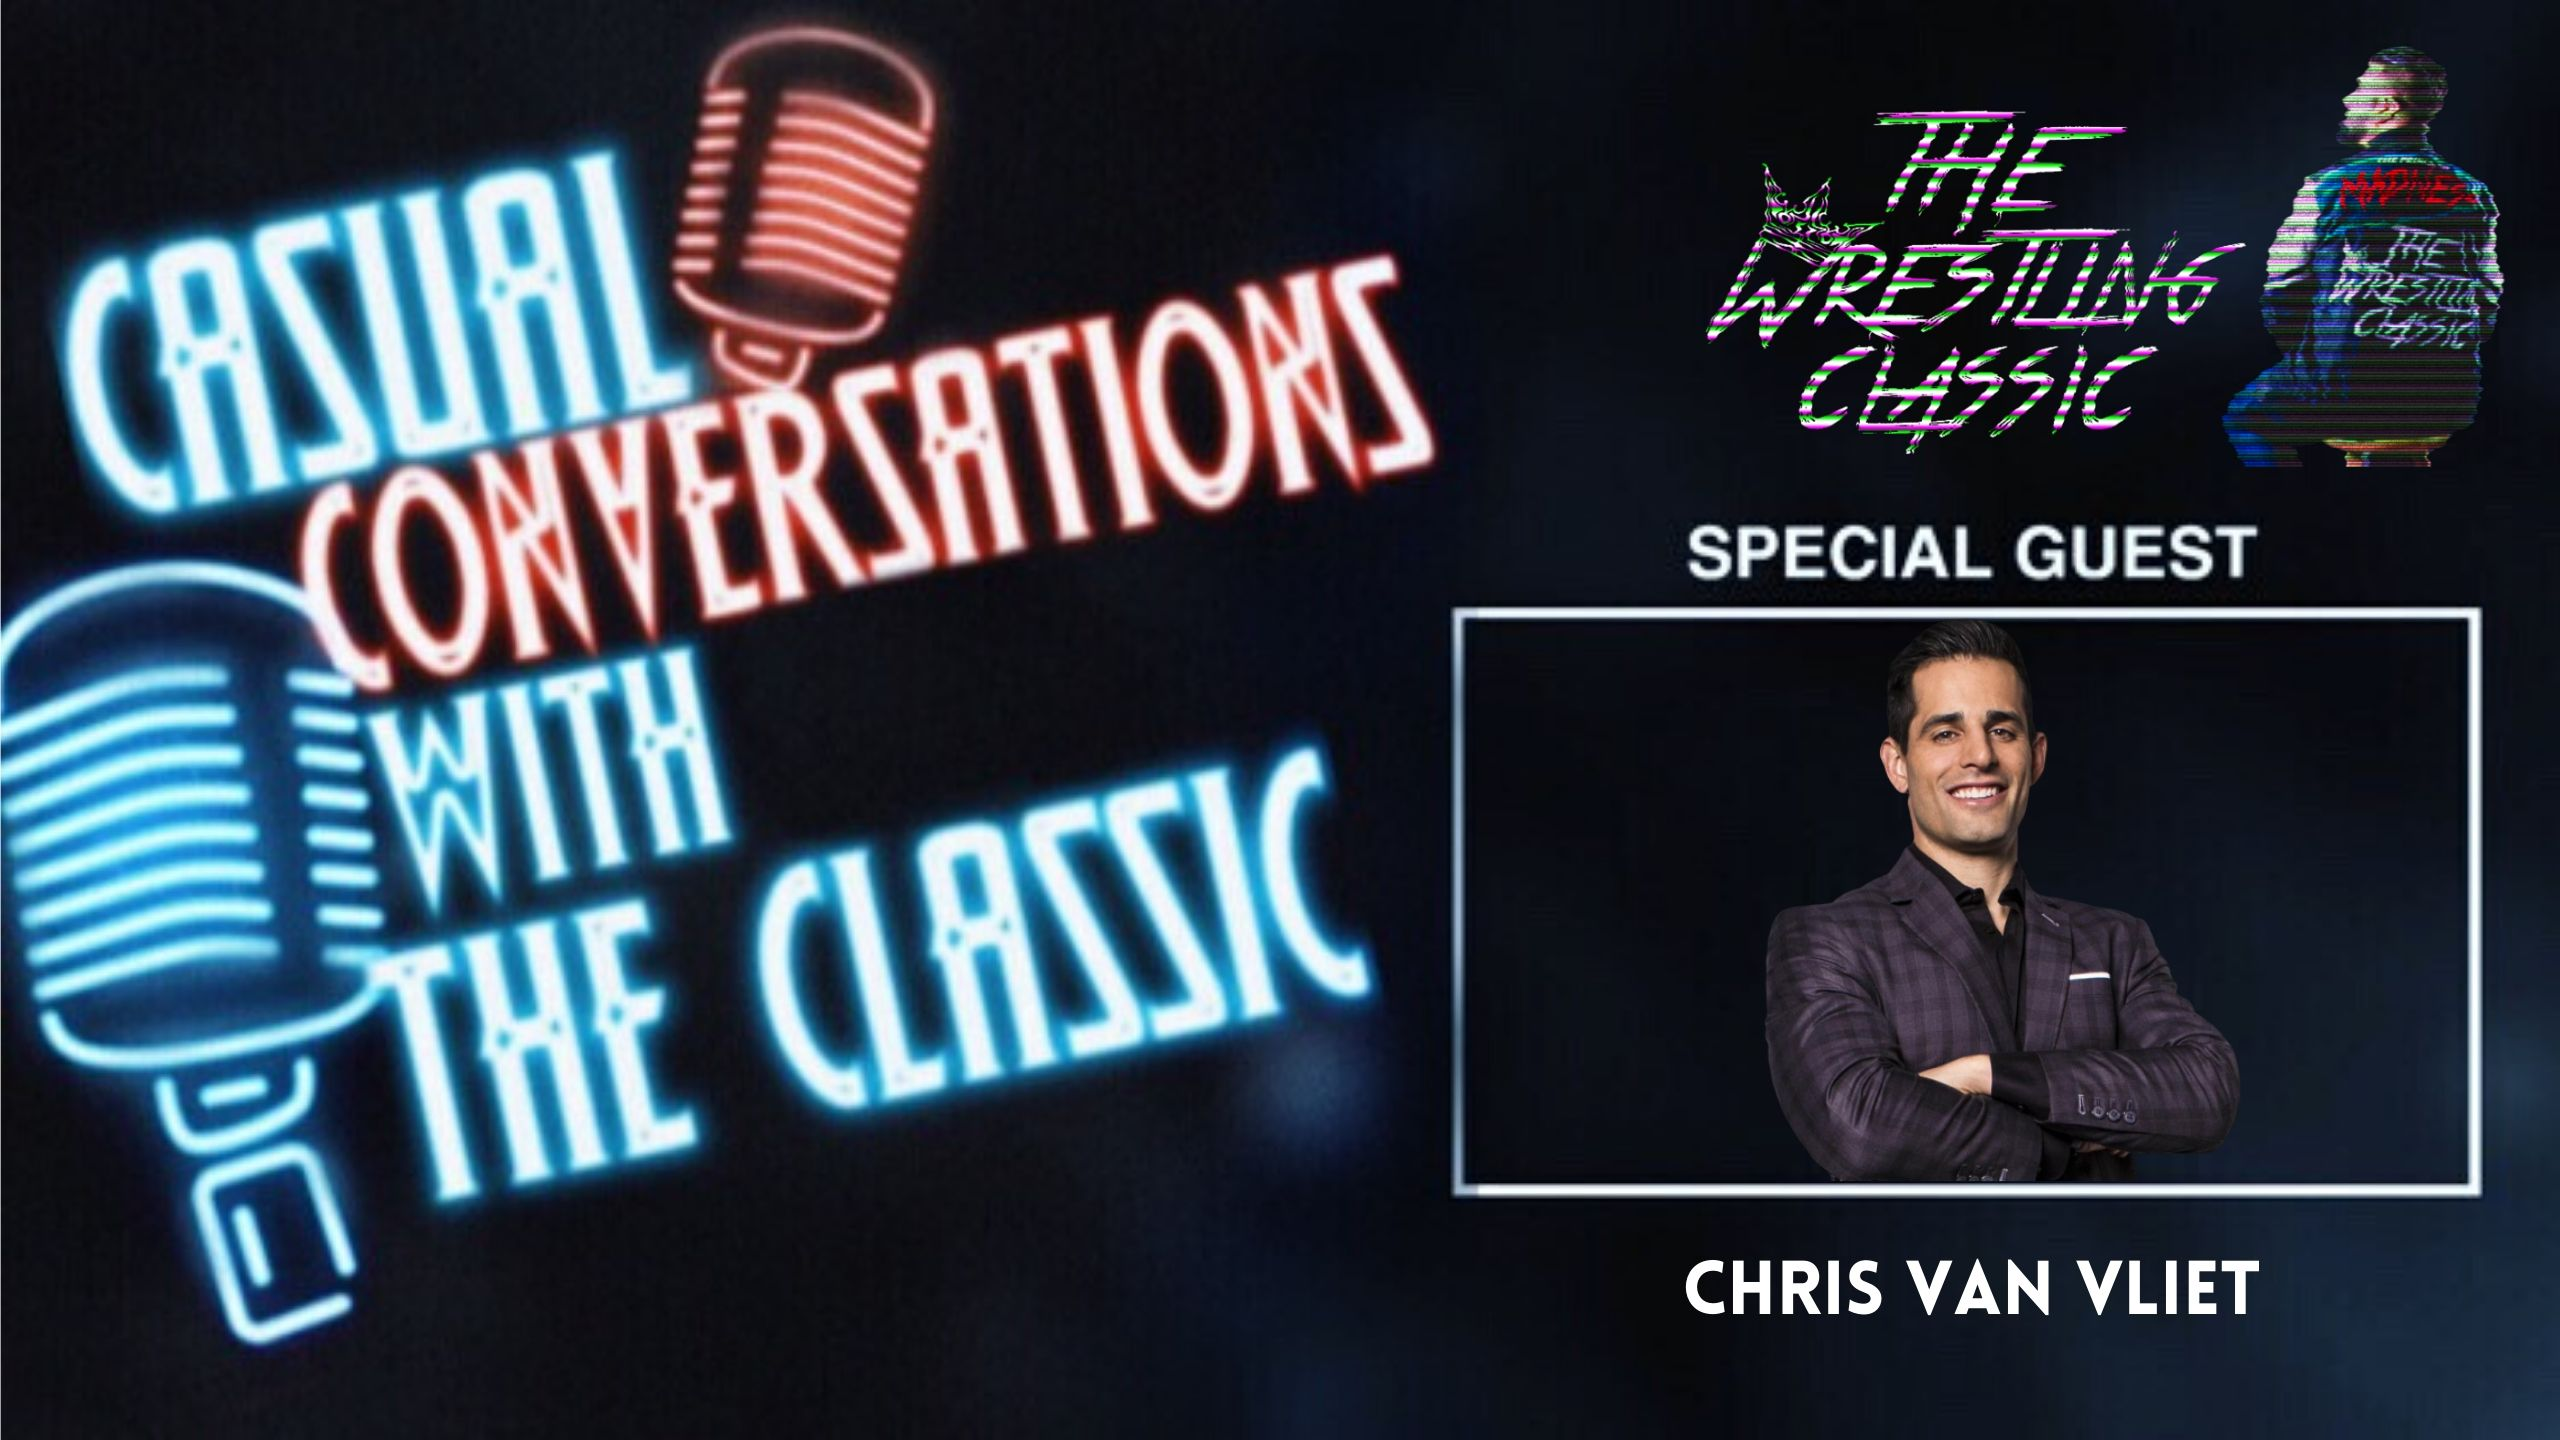 Casual Conversations with The Classic – Chris Van Vliet